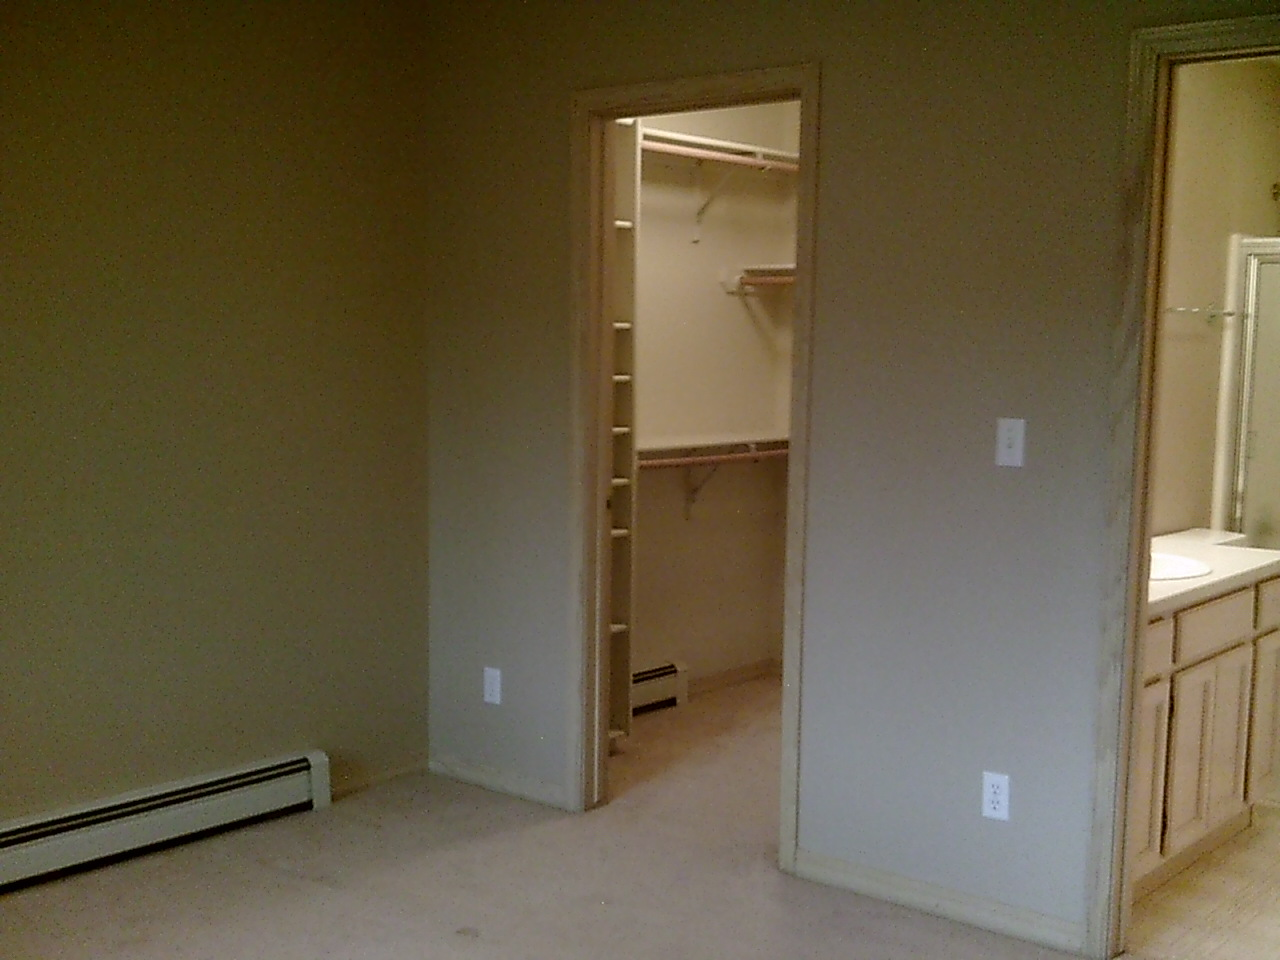 Clearview Condo Master Bed.JPG